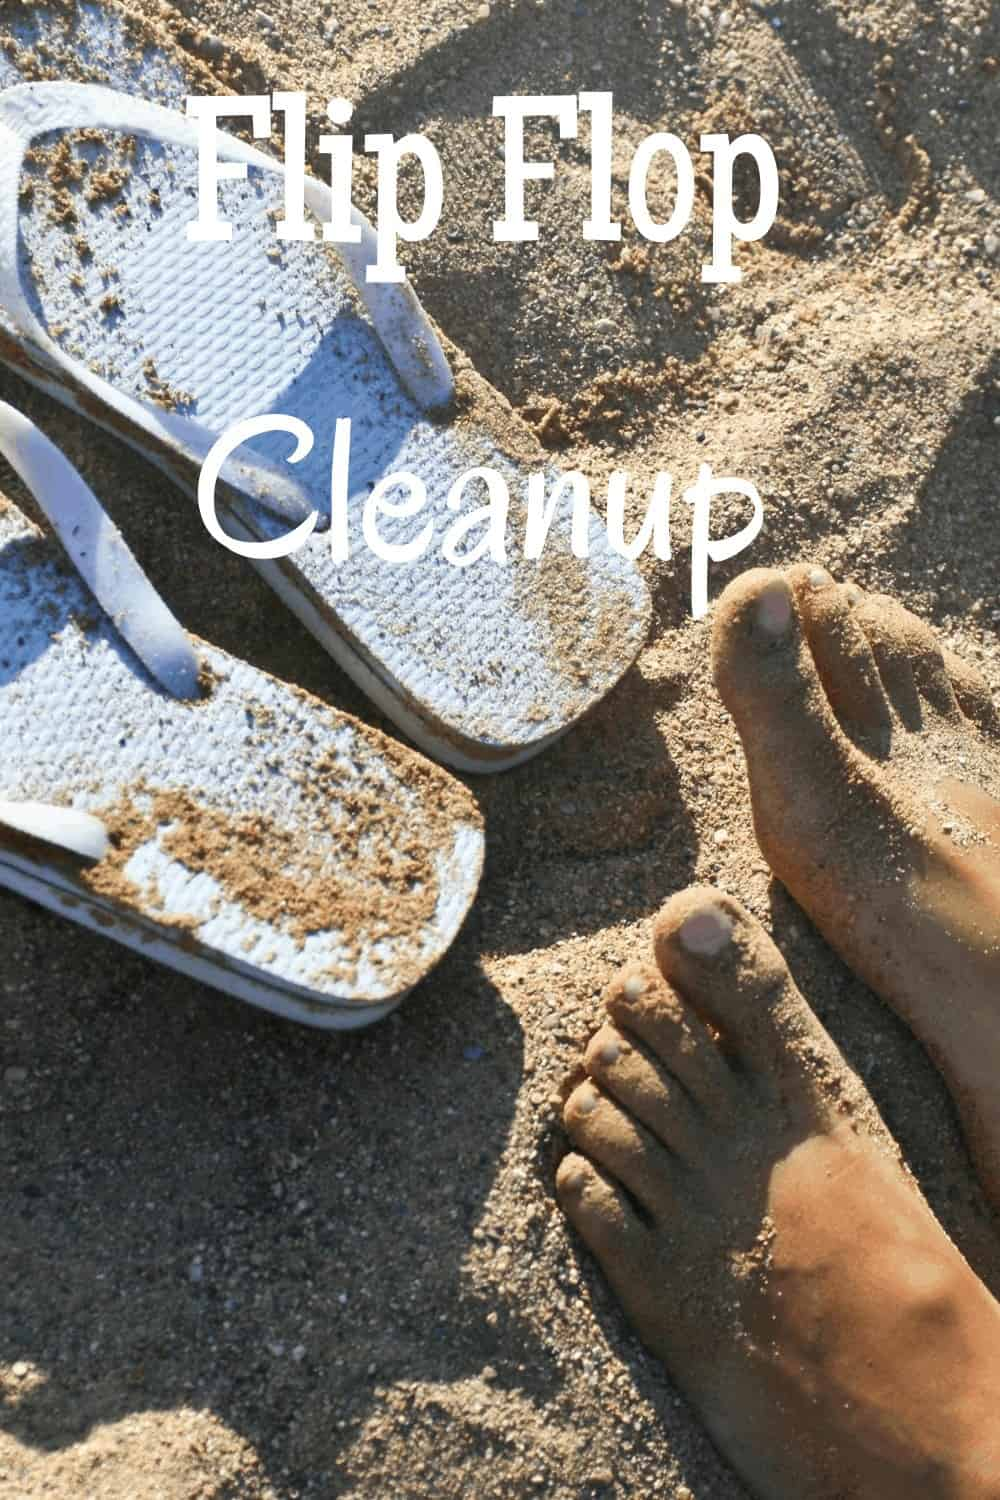 feet in sand and flip flops next to them